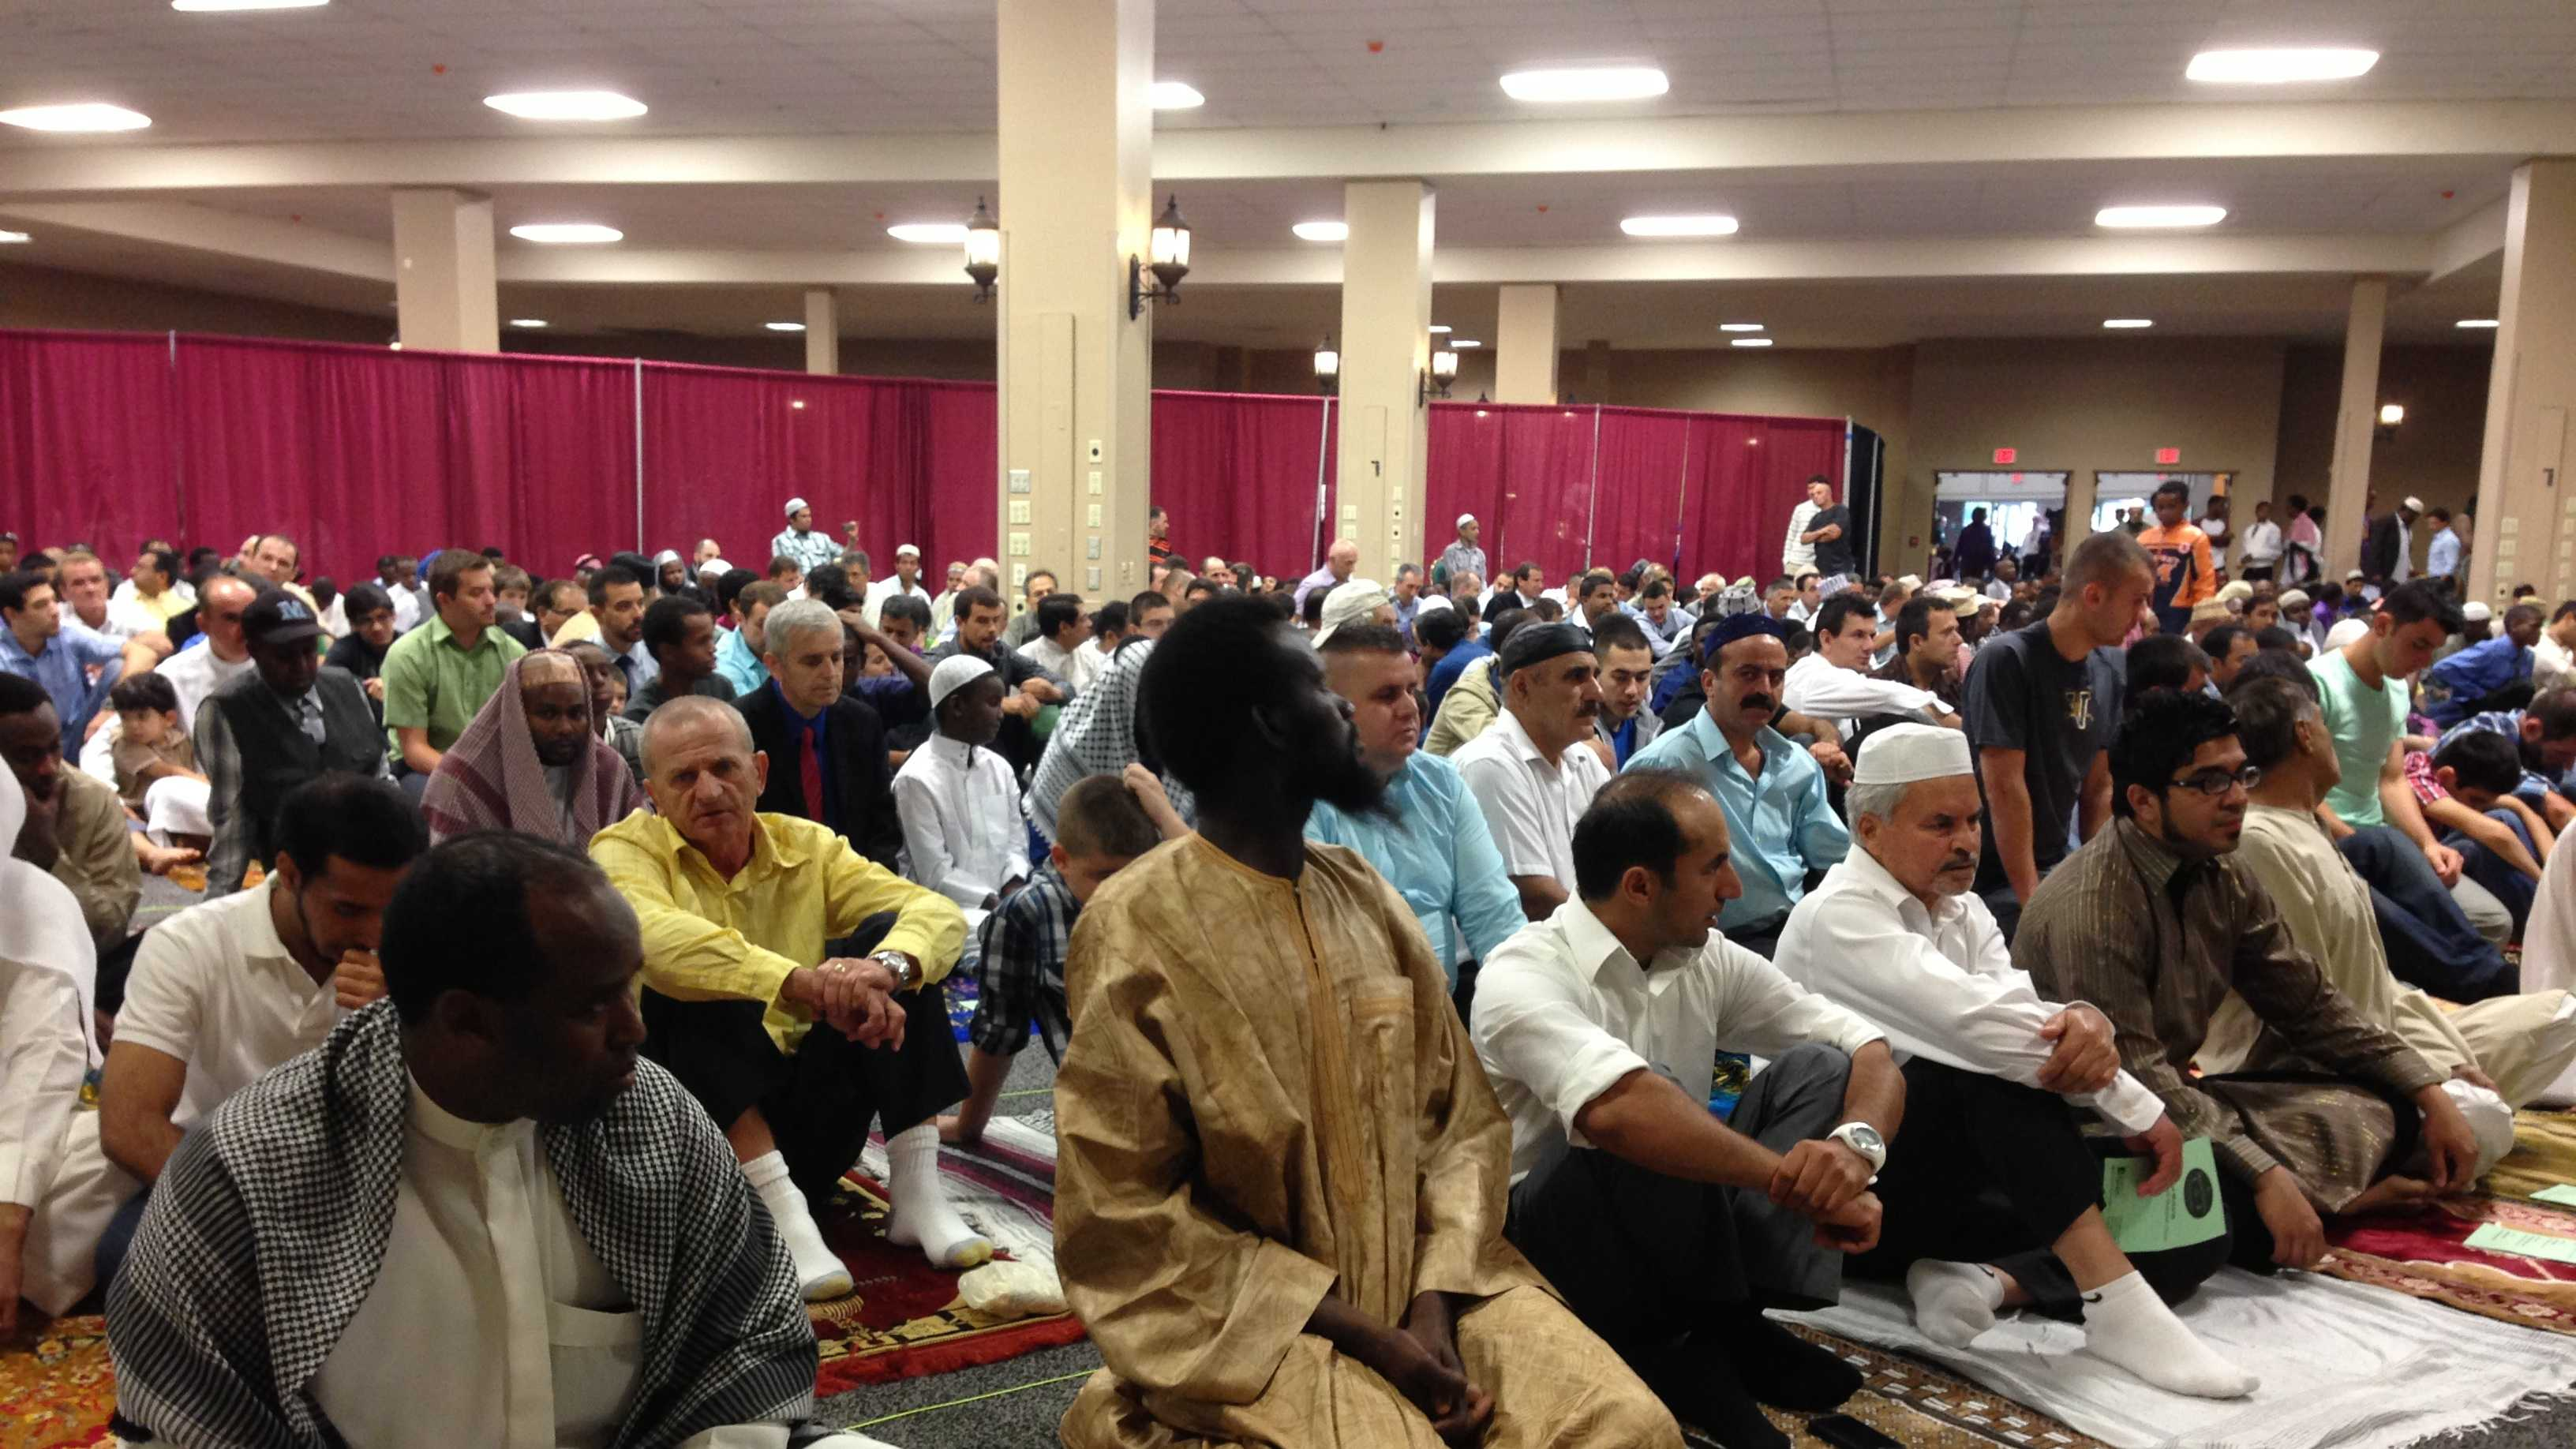 Two thousand Vermont Muslims crowd into the Sheraton Hotel Conference Center Thursday morning for a prayer service.